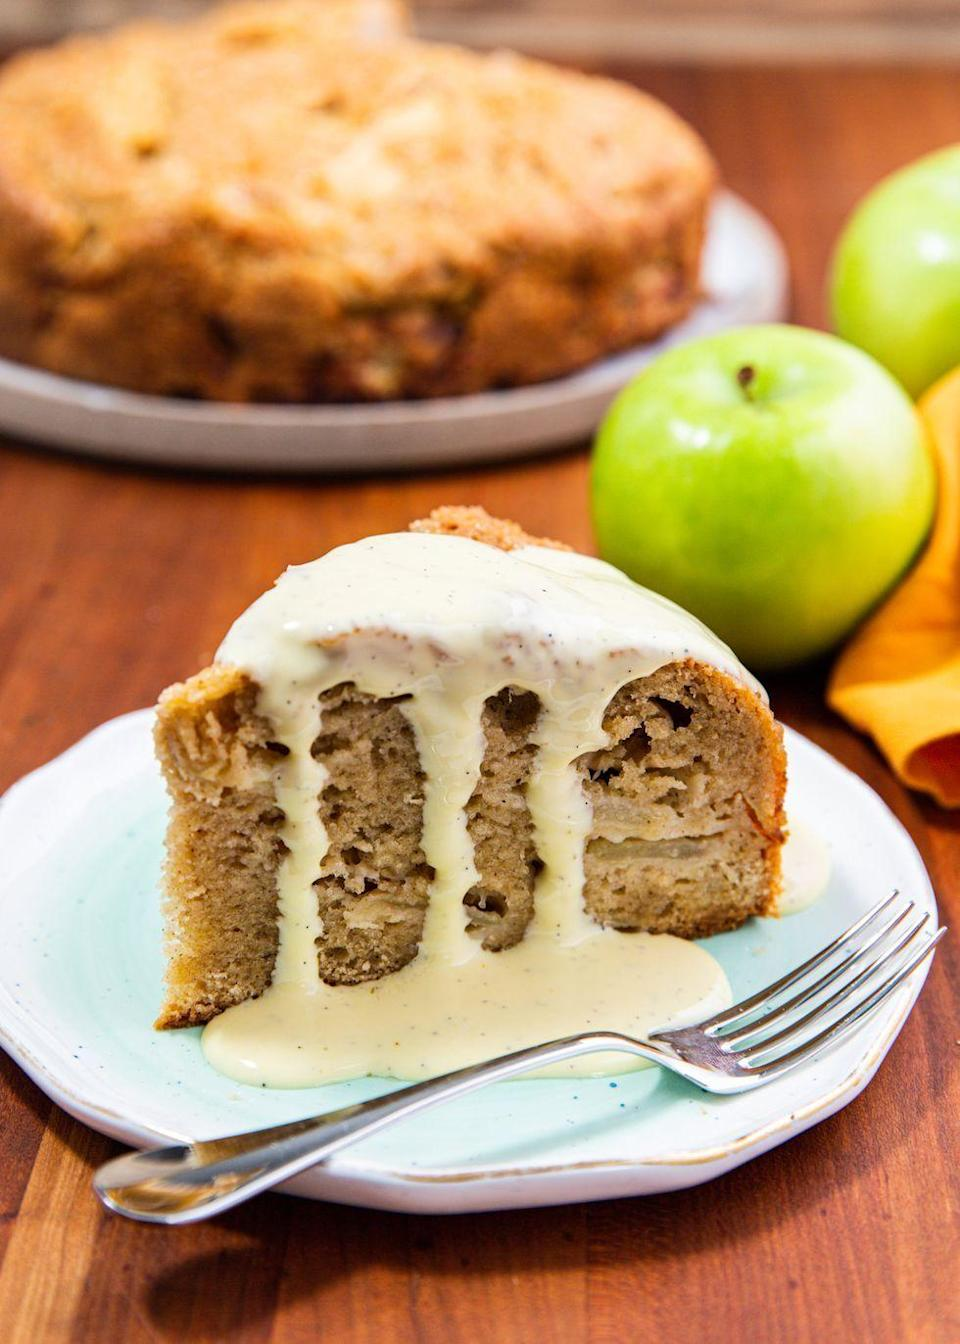 """<p>This popular Irish dessert calls for tart apples baked into a tender, flavorful cake. Need we say more? </p><p><em><a href=""""https://www.delish.com/cooking/recipe-ideas/a30781773/irish-apple-cake/"""" rel=""""nofollow noopener"""" target=""""_blank"""" data-ylk=""""slk:Get the recipe from Delish »"""" class=""""link rapid-noclick-resp"""">Get the recipe from Delish »</a></em> </p>"""